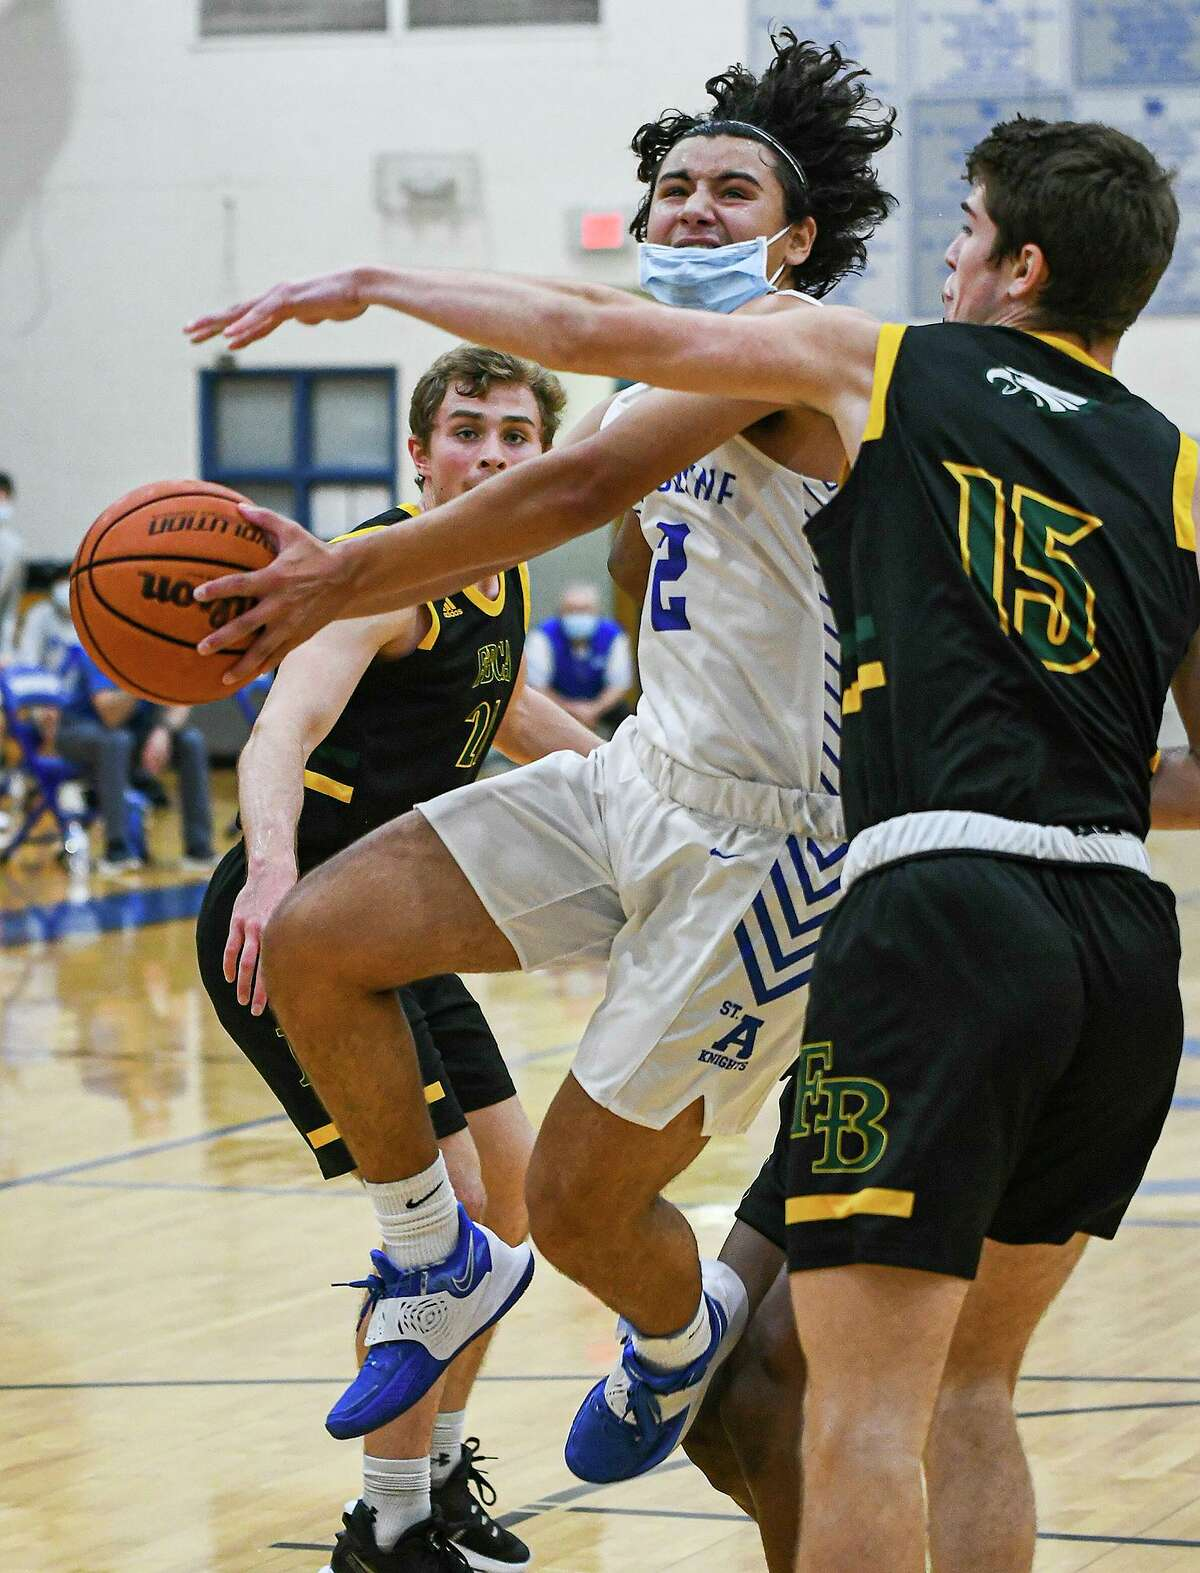 St. Augustine's Diego Romo was named first-team All-State after averaging 21.8 points, 5.1 rebounds, 2.5 assists and 2.2 steals for the Knights in his junior season.